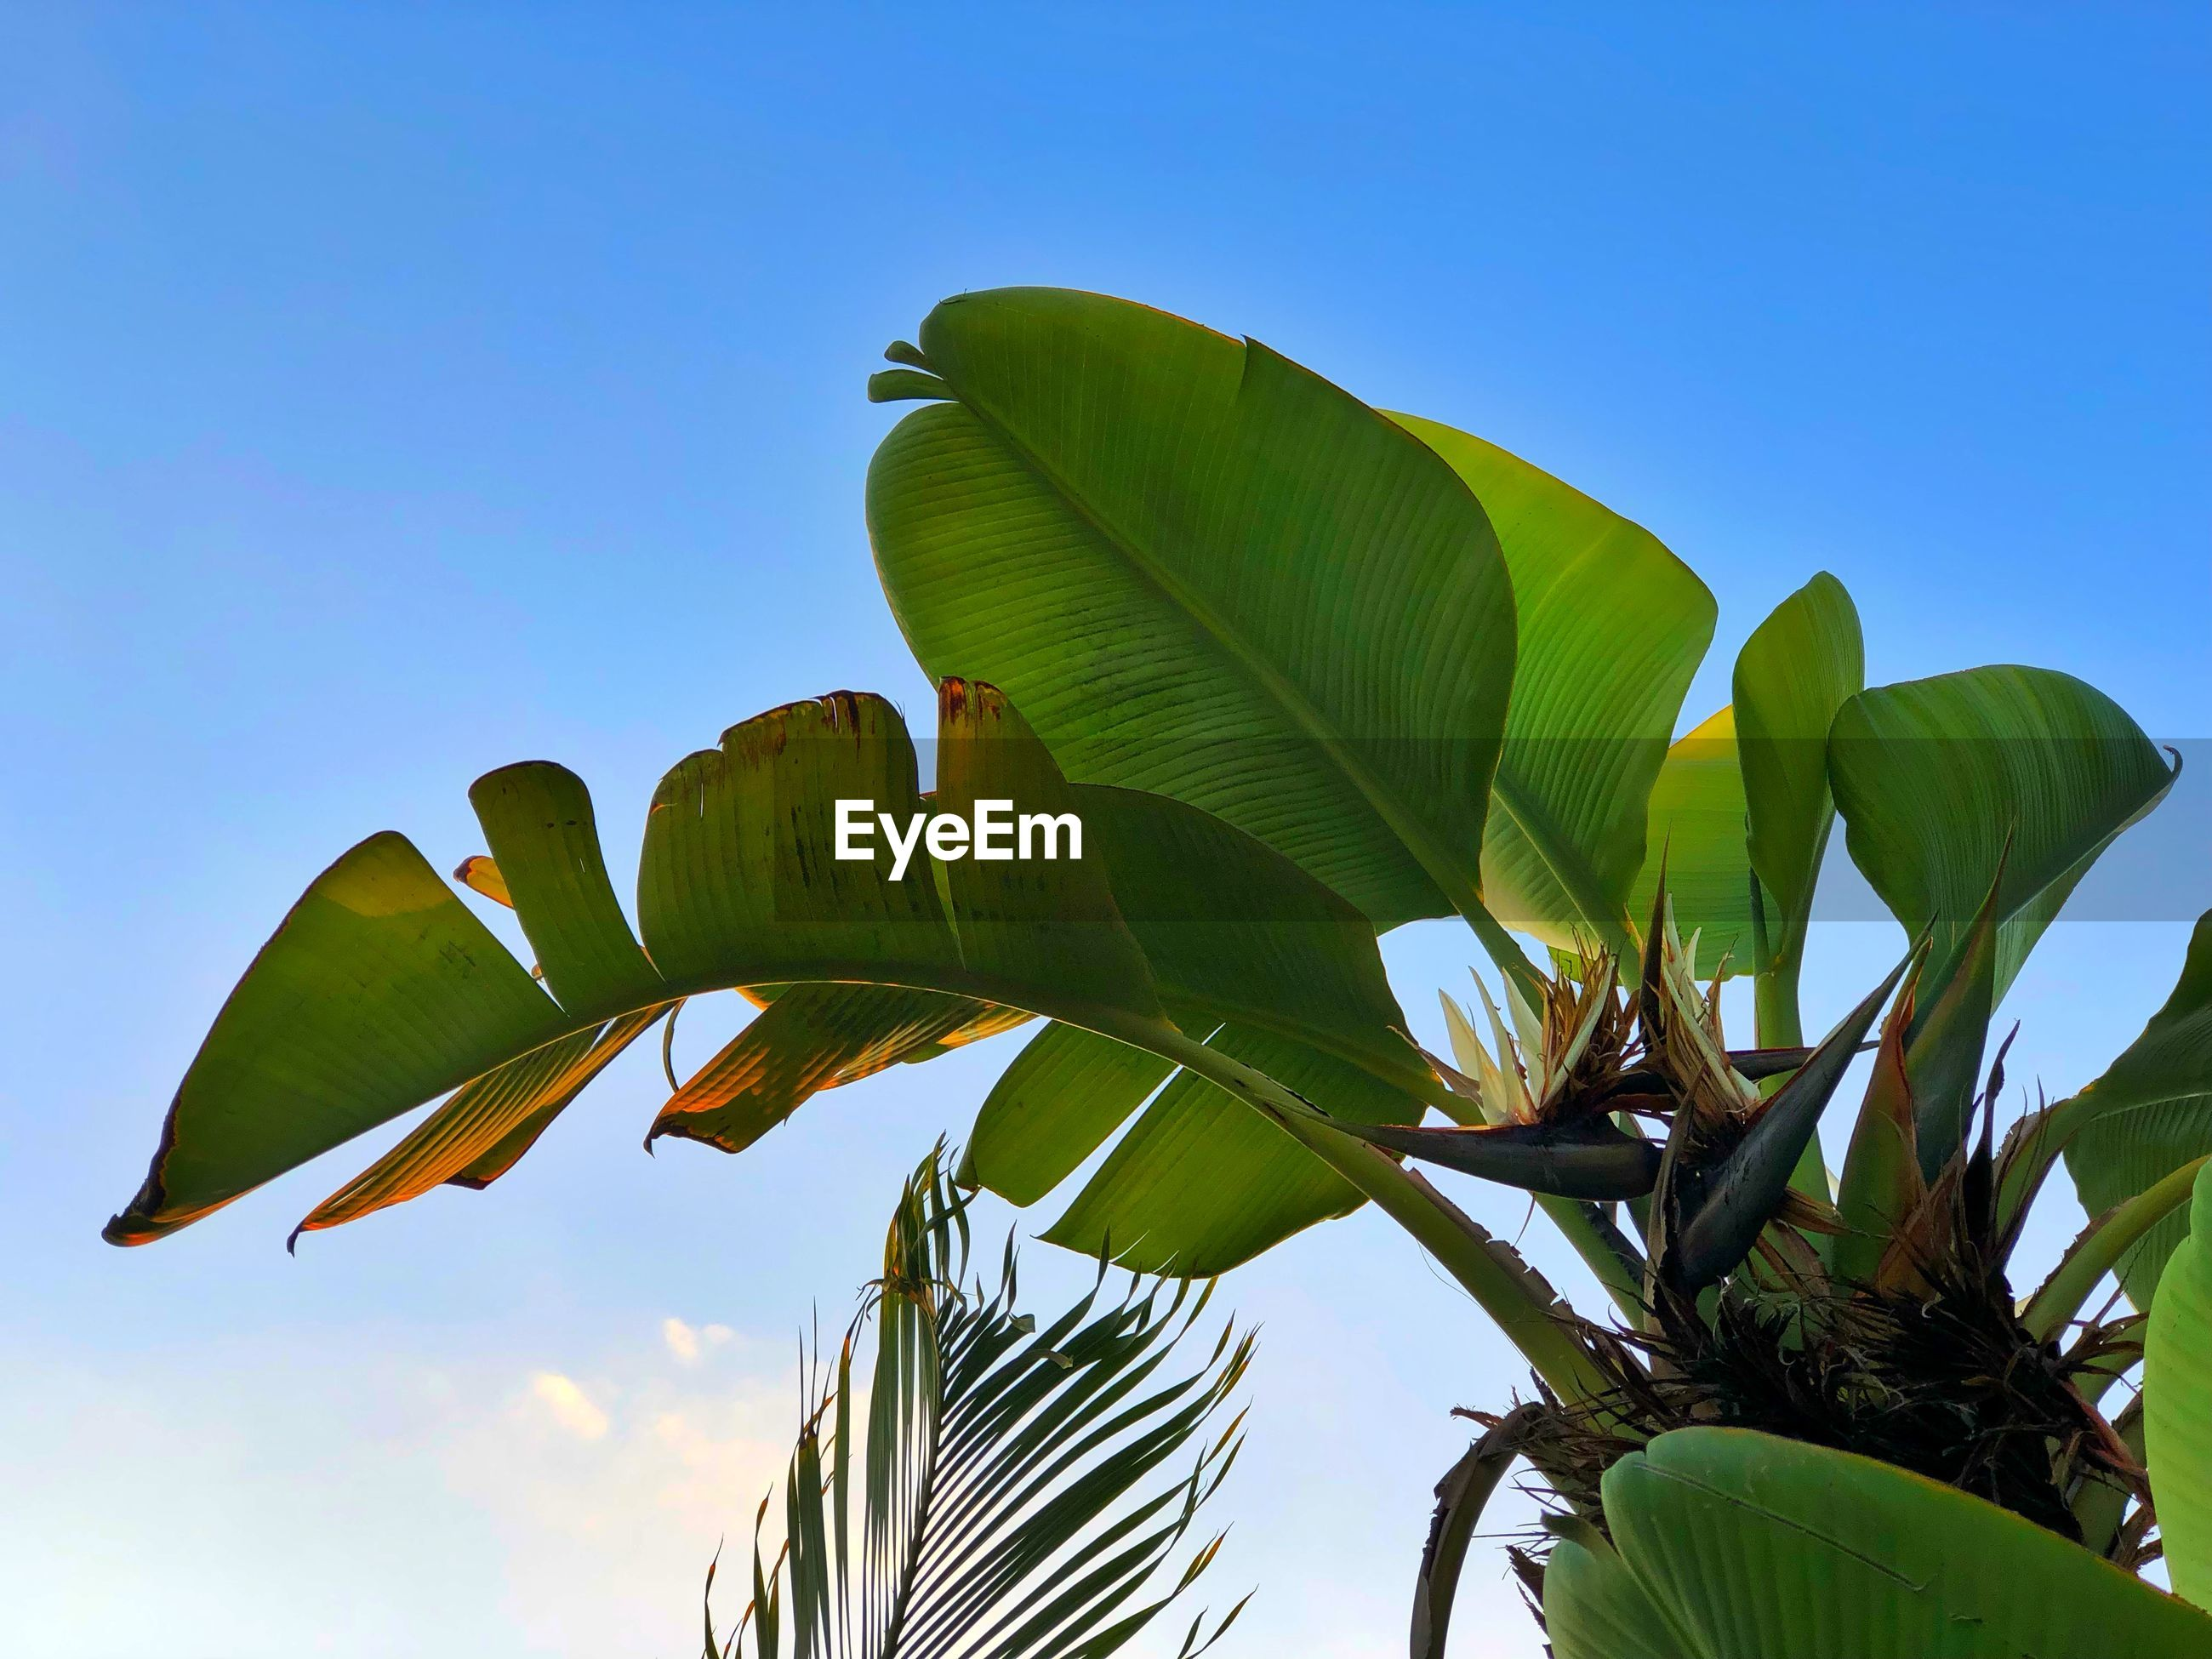 Low angle view of banana tree against blue sky